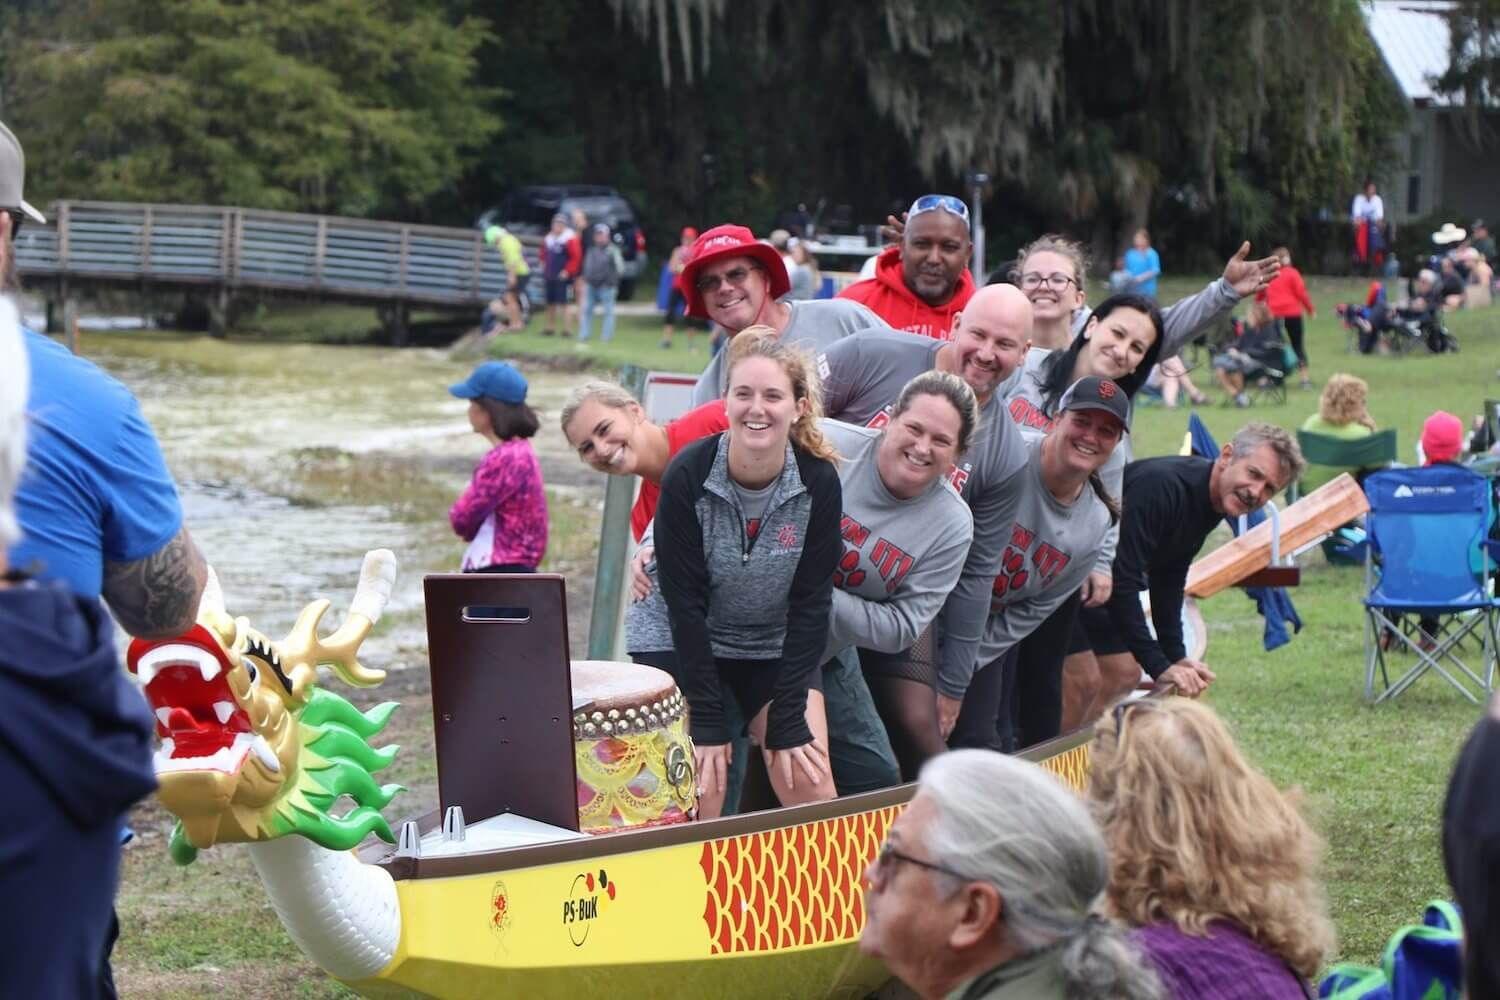 Photo of a Dragonboat team smiling in their boat